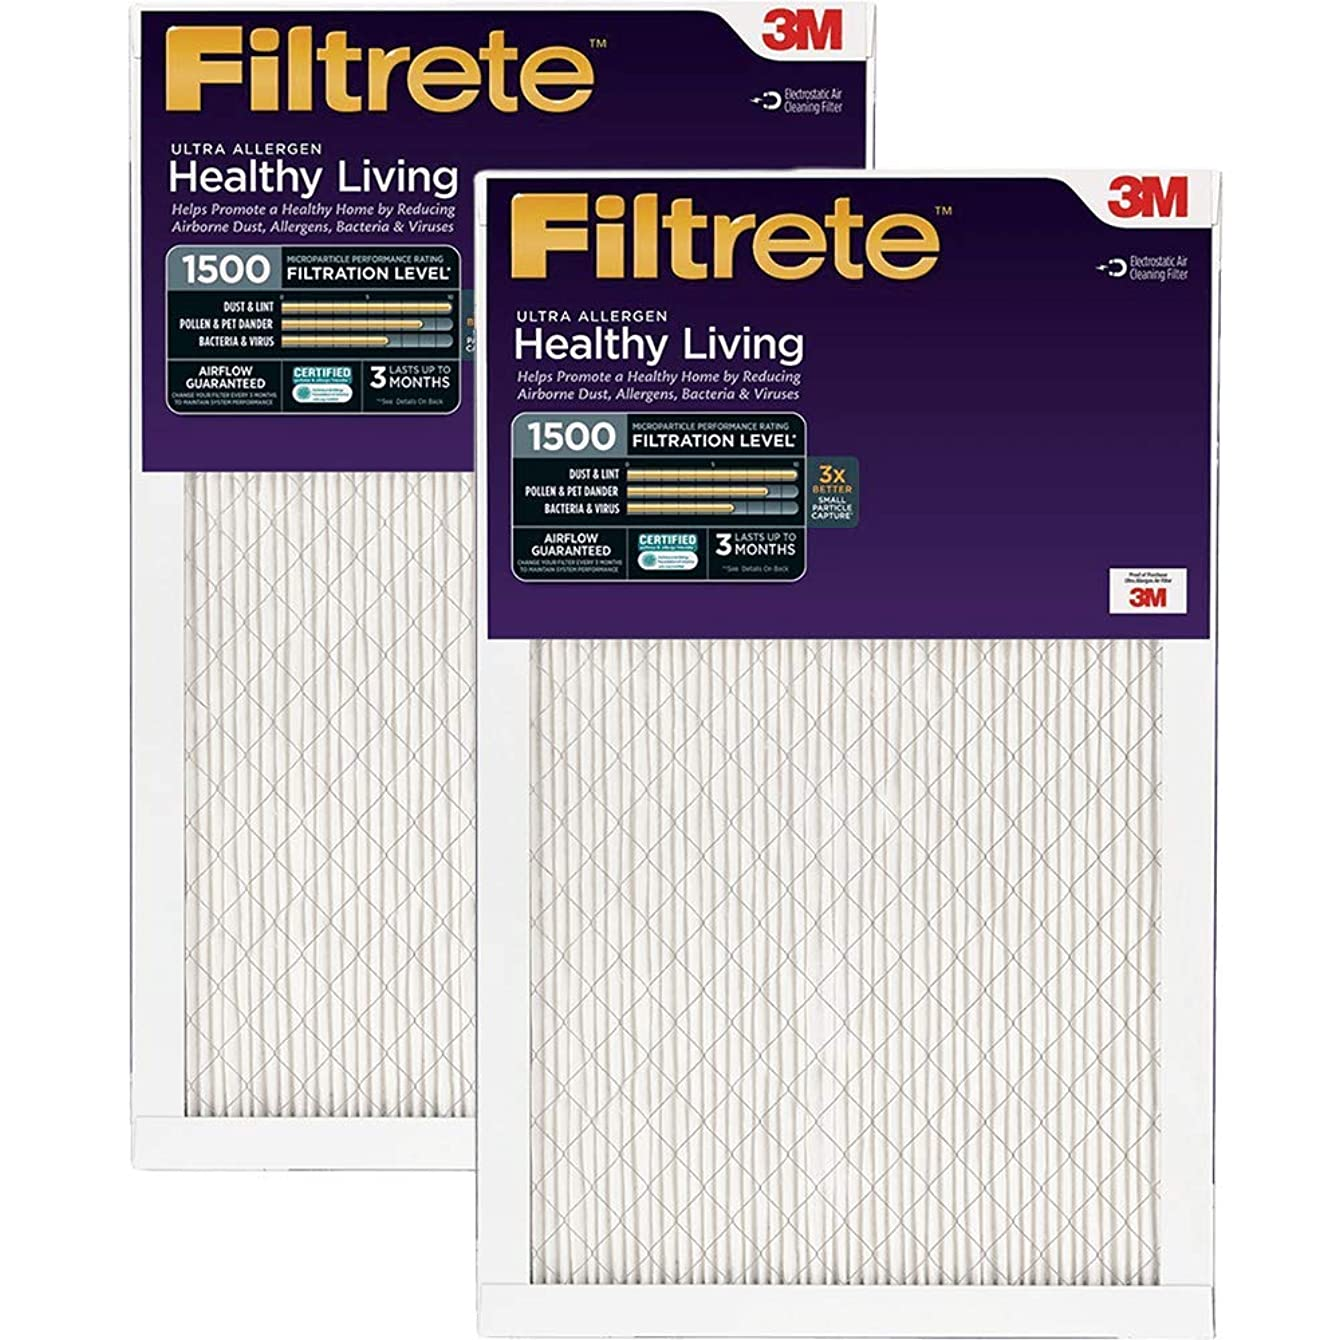 20x25x1 (19.6 x 24.6) Filtrete 1250 Ultra Allergen Filter by 3M (4 Pack)